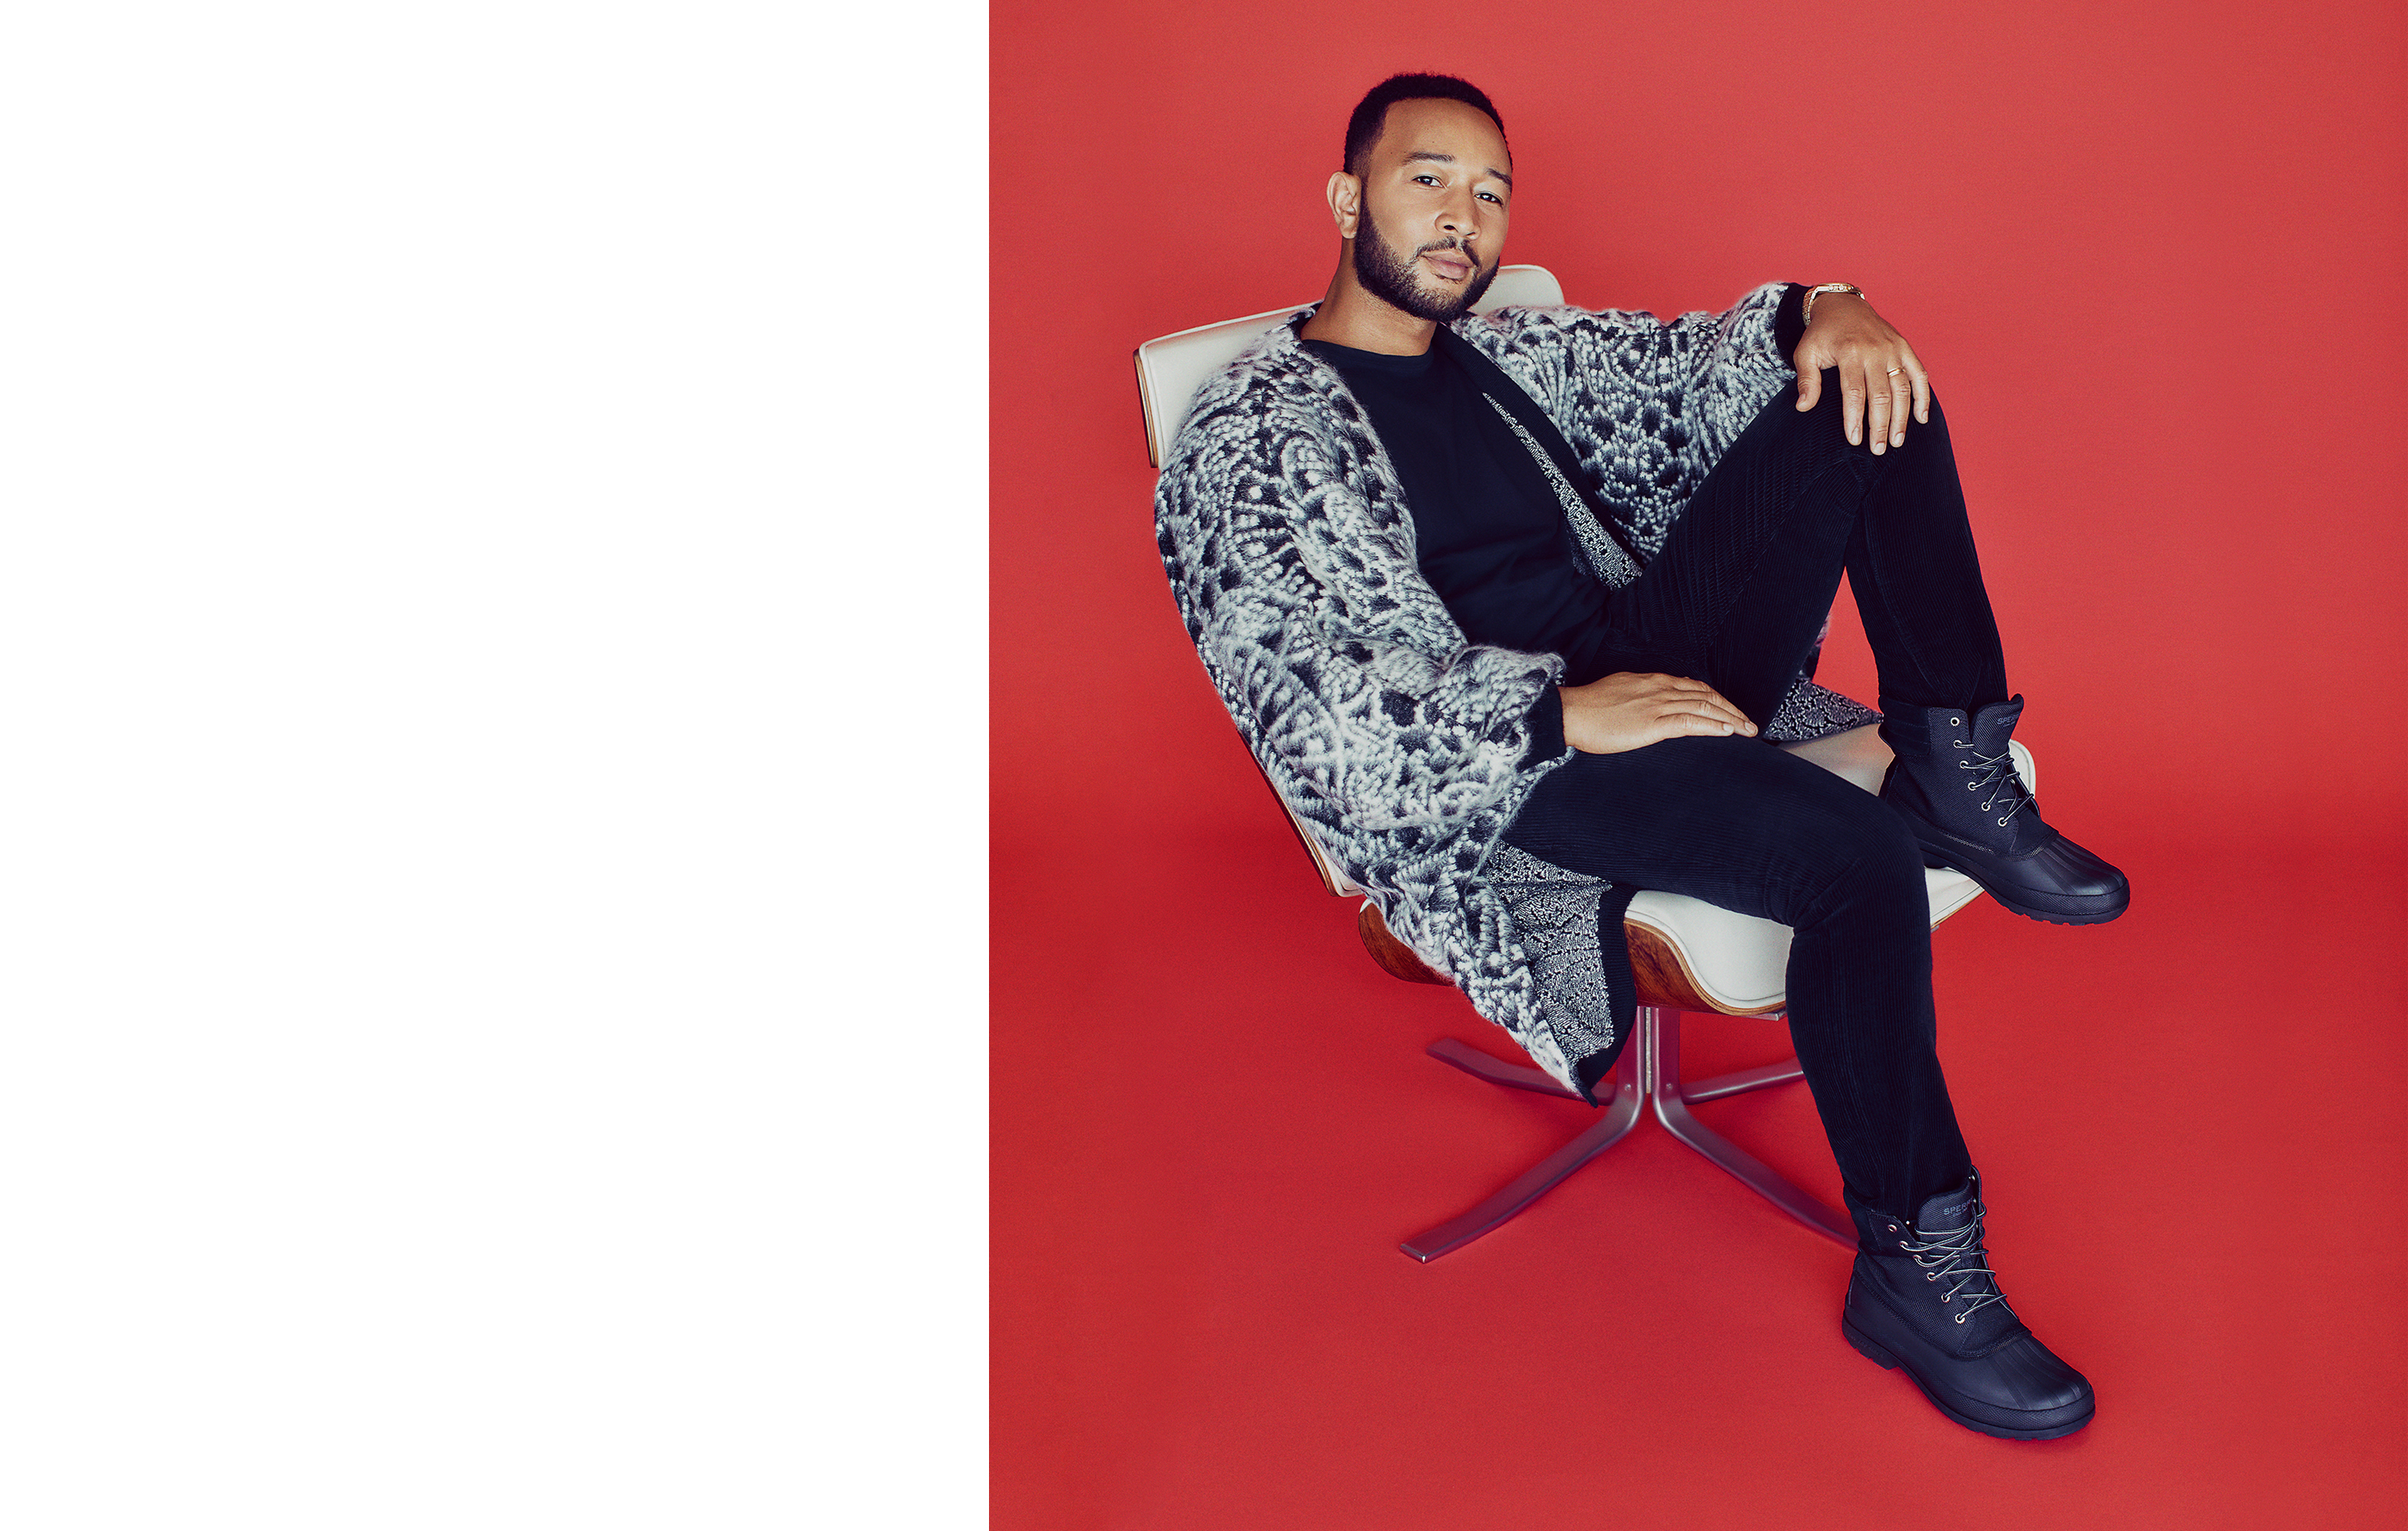 John Legend laid back in a chair just chilling with one foot on the chair wearing Sperry Cold Bay Nylond Duck Boots.